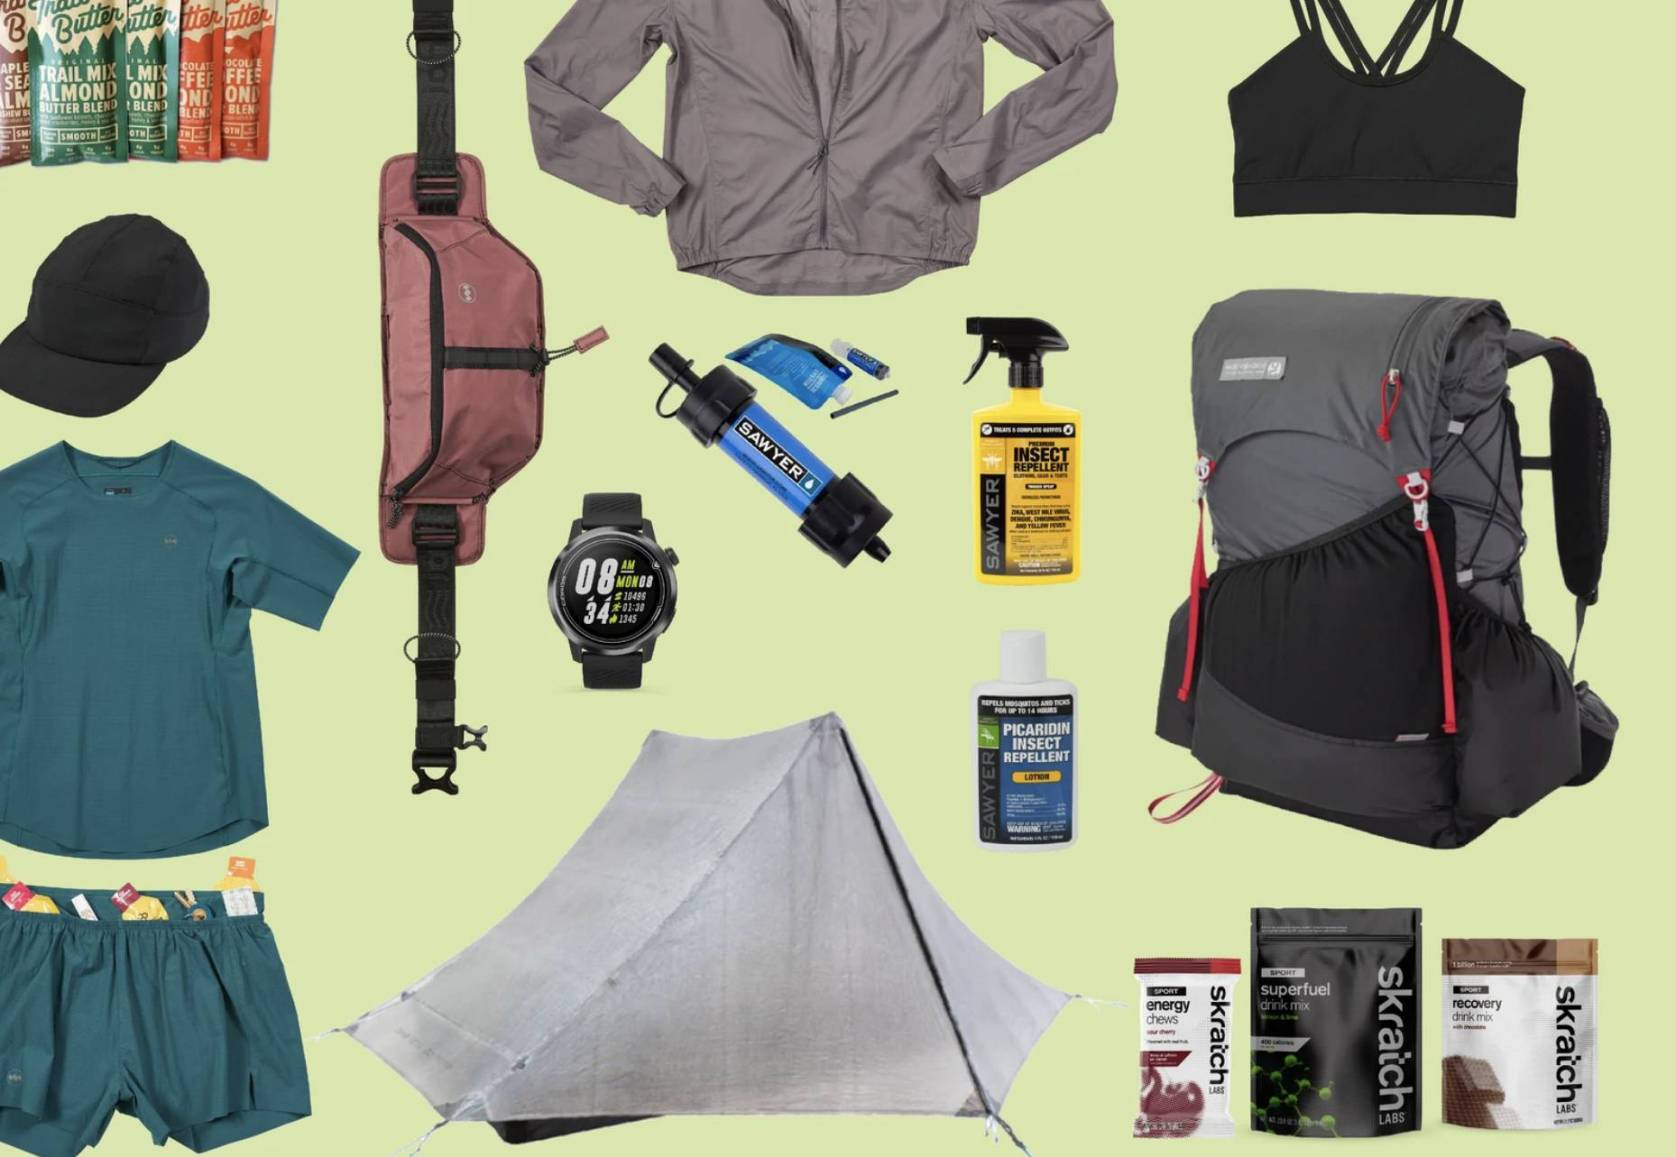 fastpacking-giveaway-1676x1157